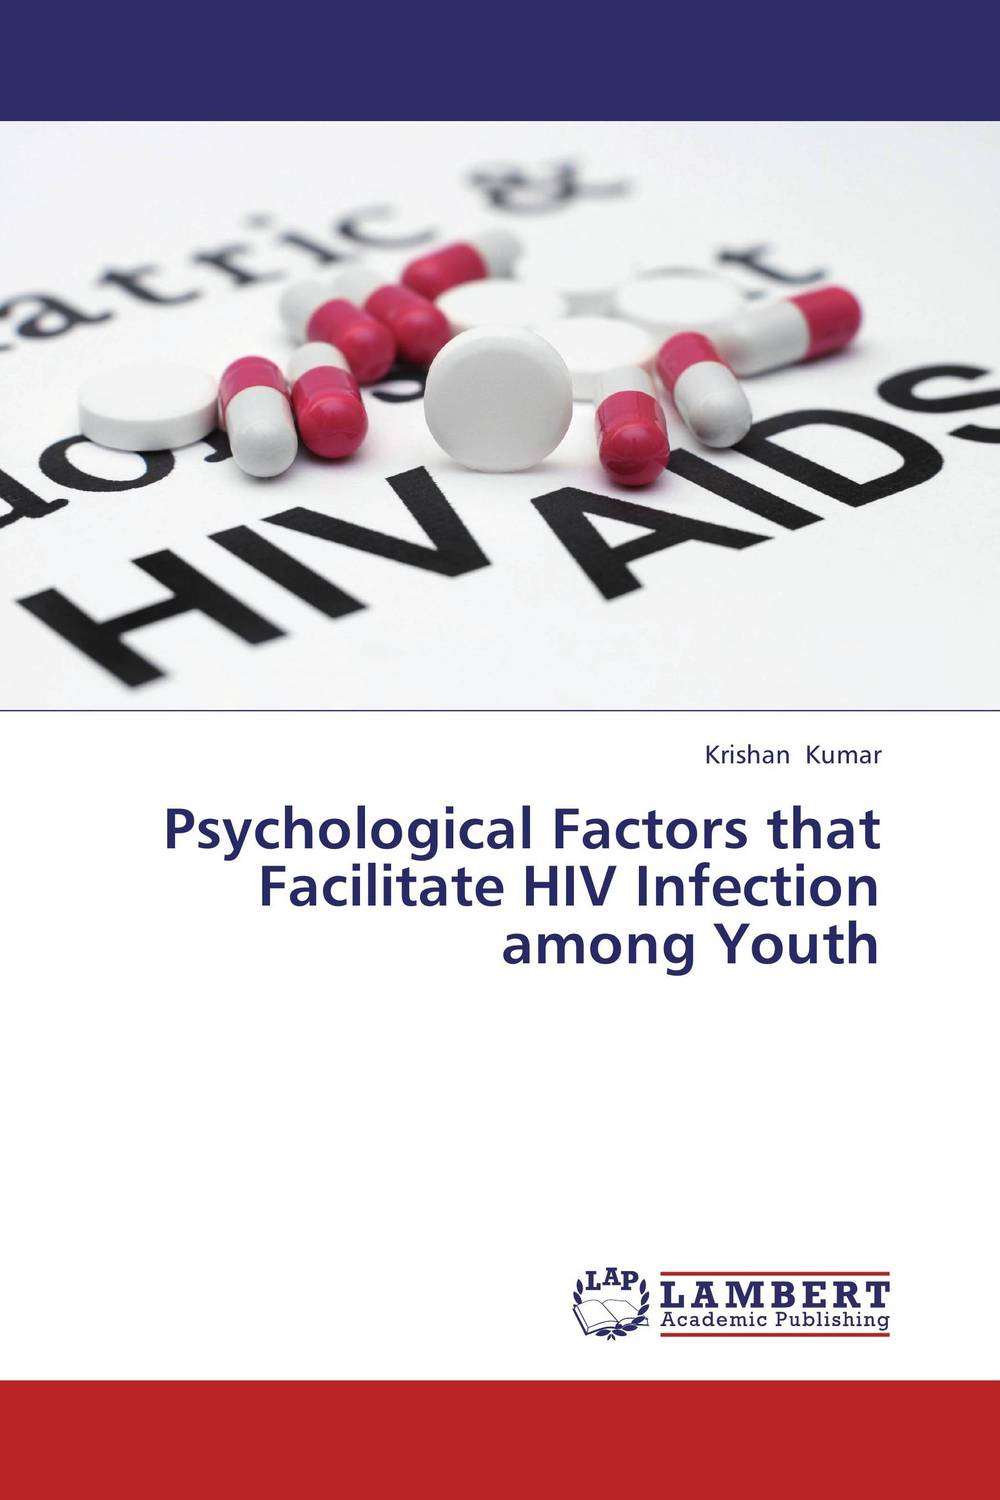 Psychological Factors that Facilitate HIV Infection among Youth koning jan de high returns from low risk